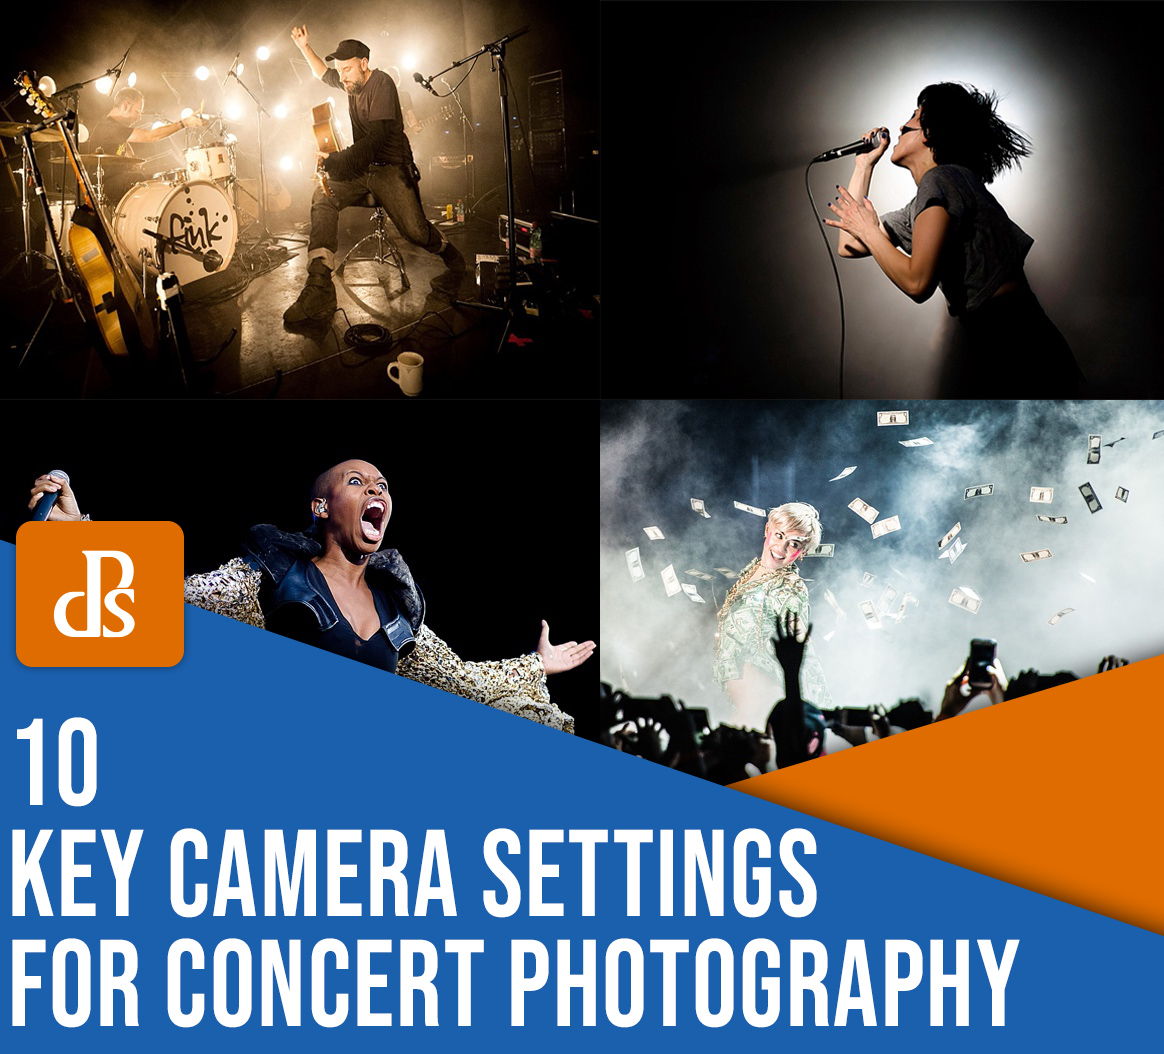 10 key camera settings for concert photography